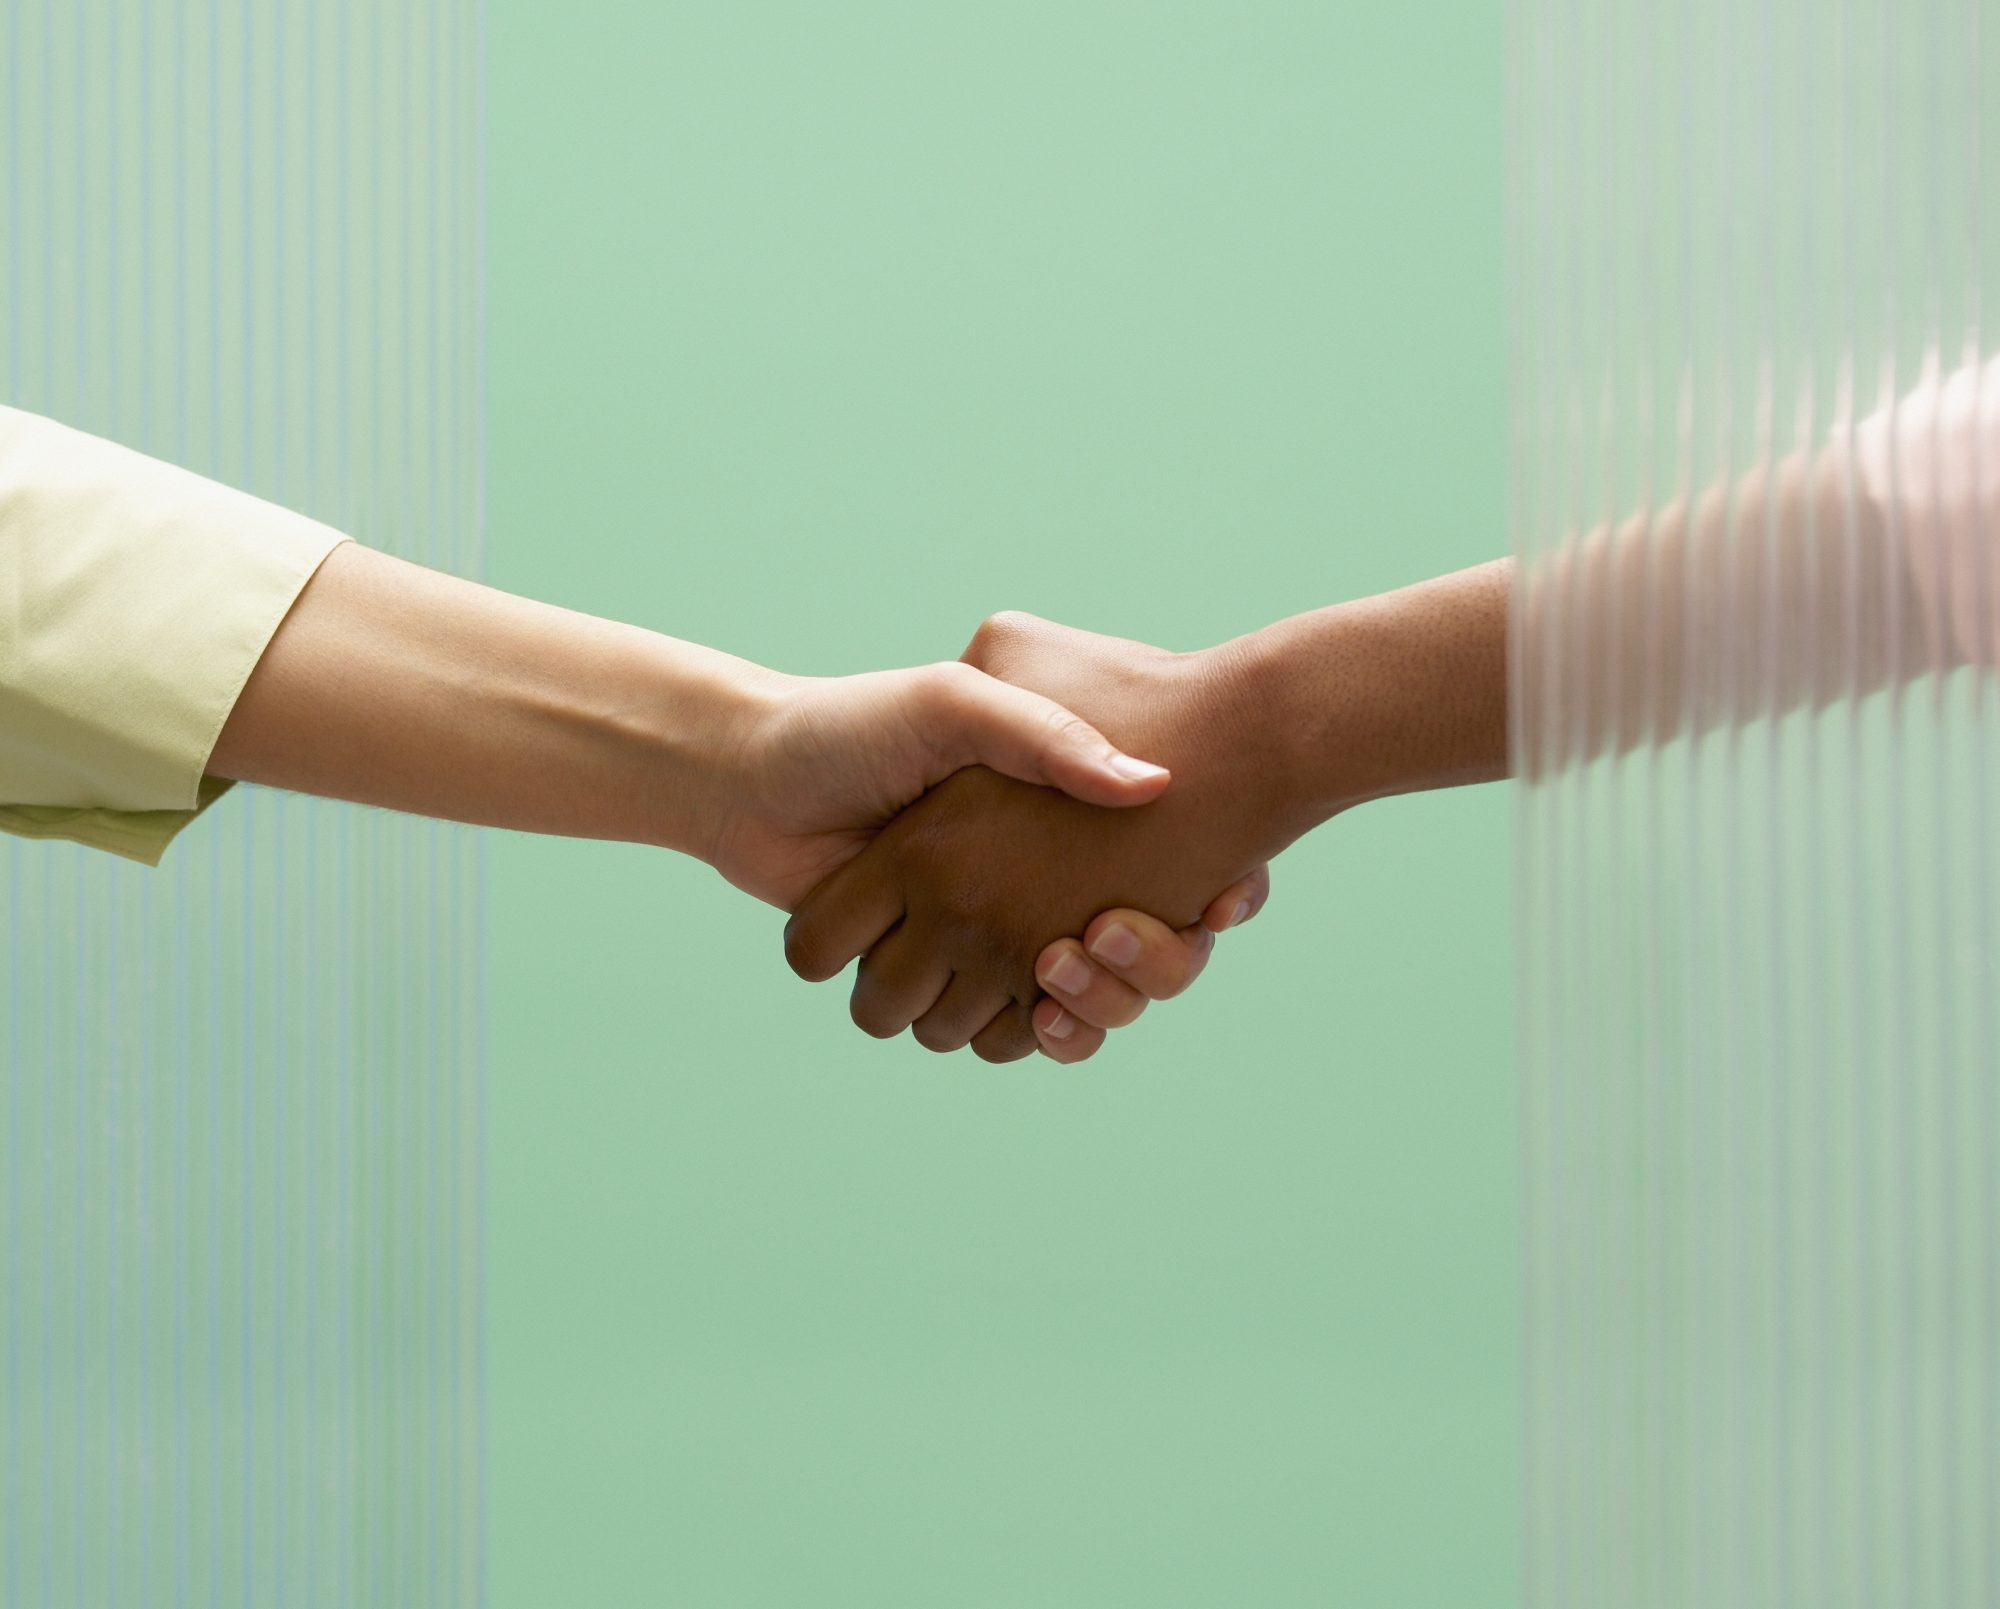 How to Follow Up After a Job Interview: two people shaking hands on a green background